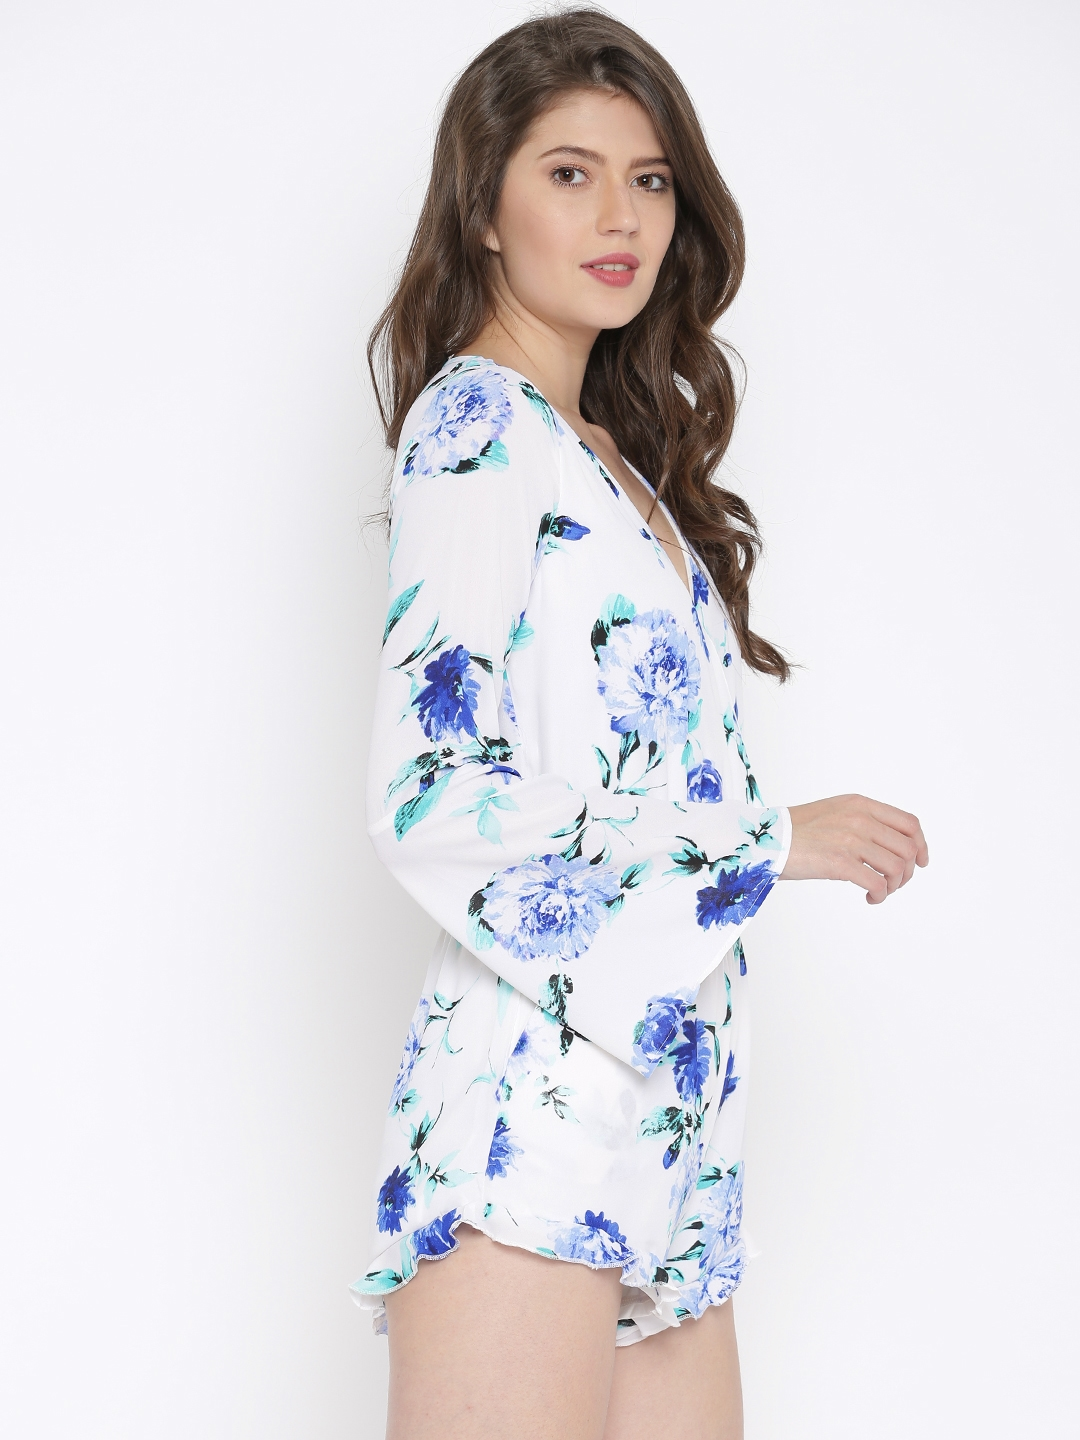 a94c637db5b9 Buy FOREVER 21 White   Blue Floral Print Rompers - Jumpsuit for ...